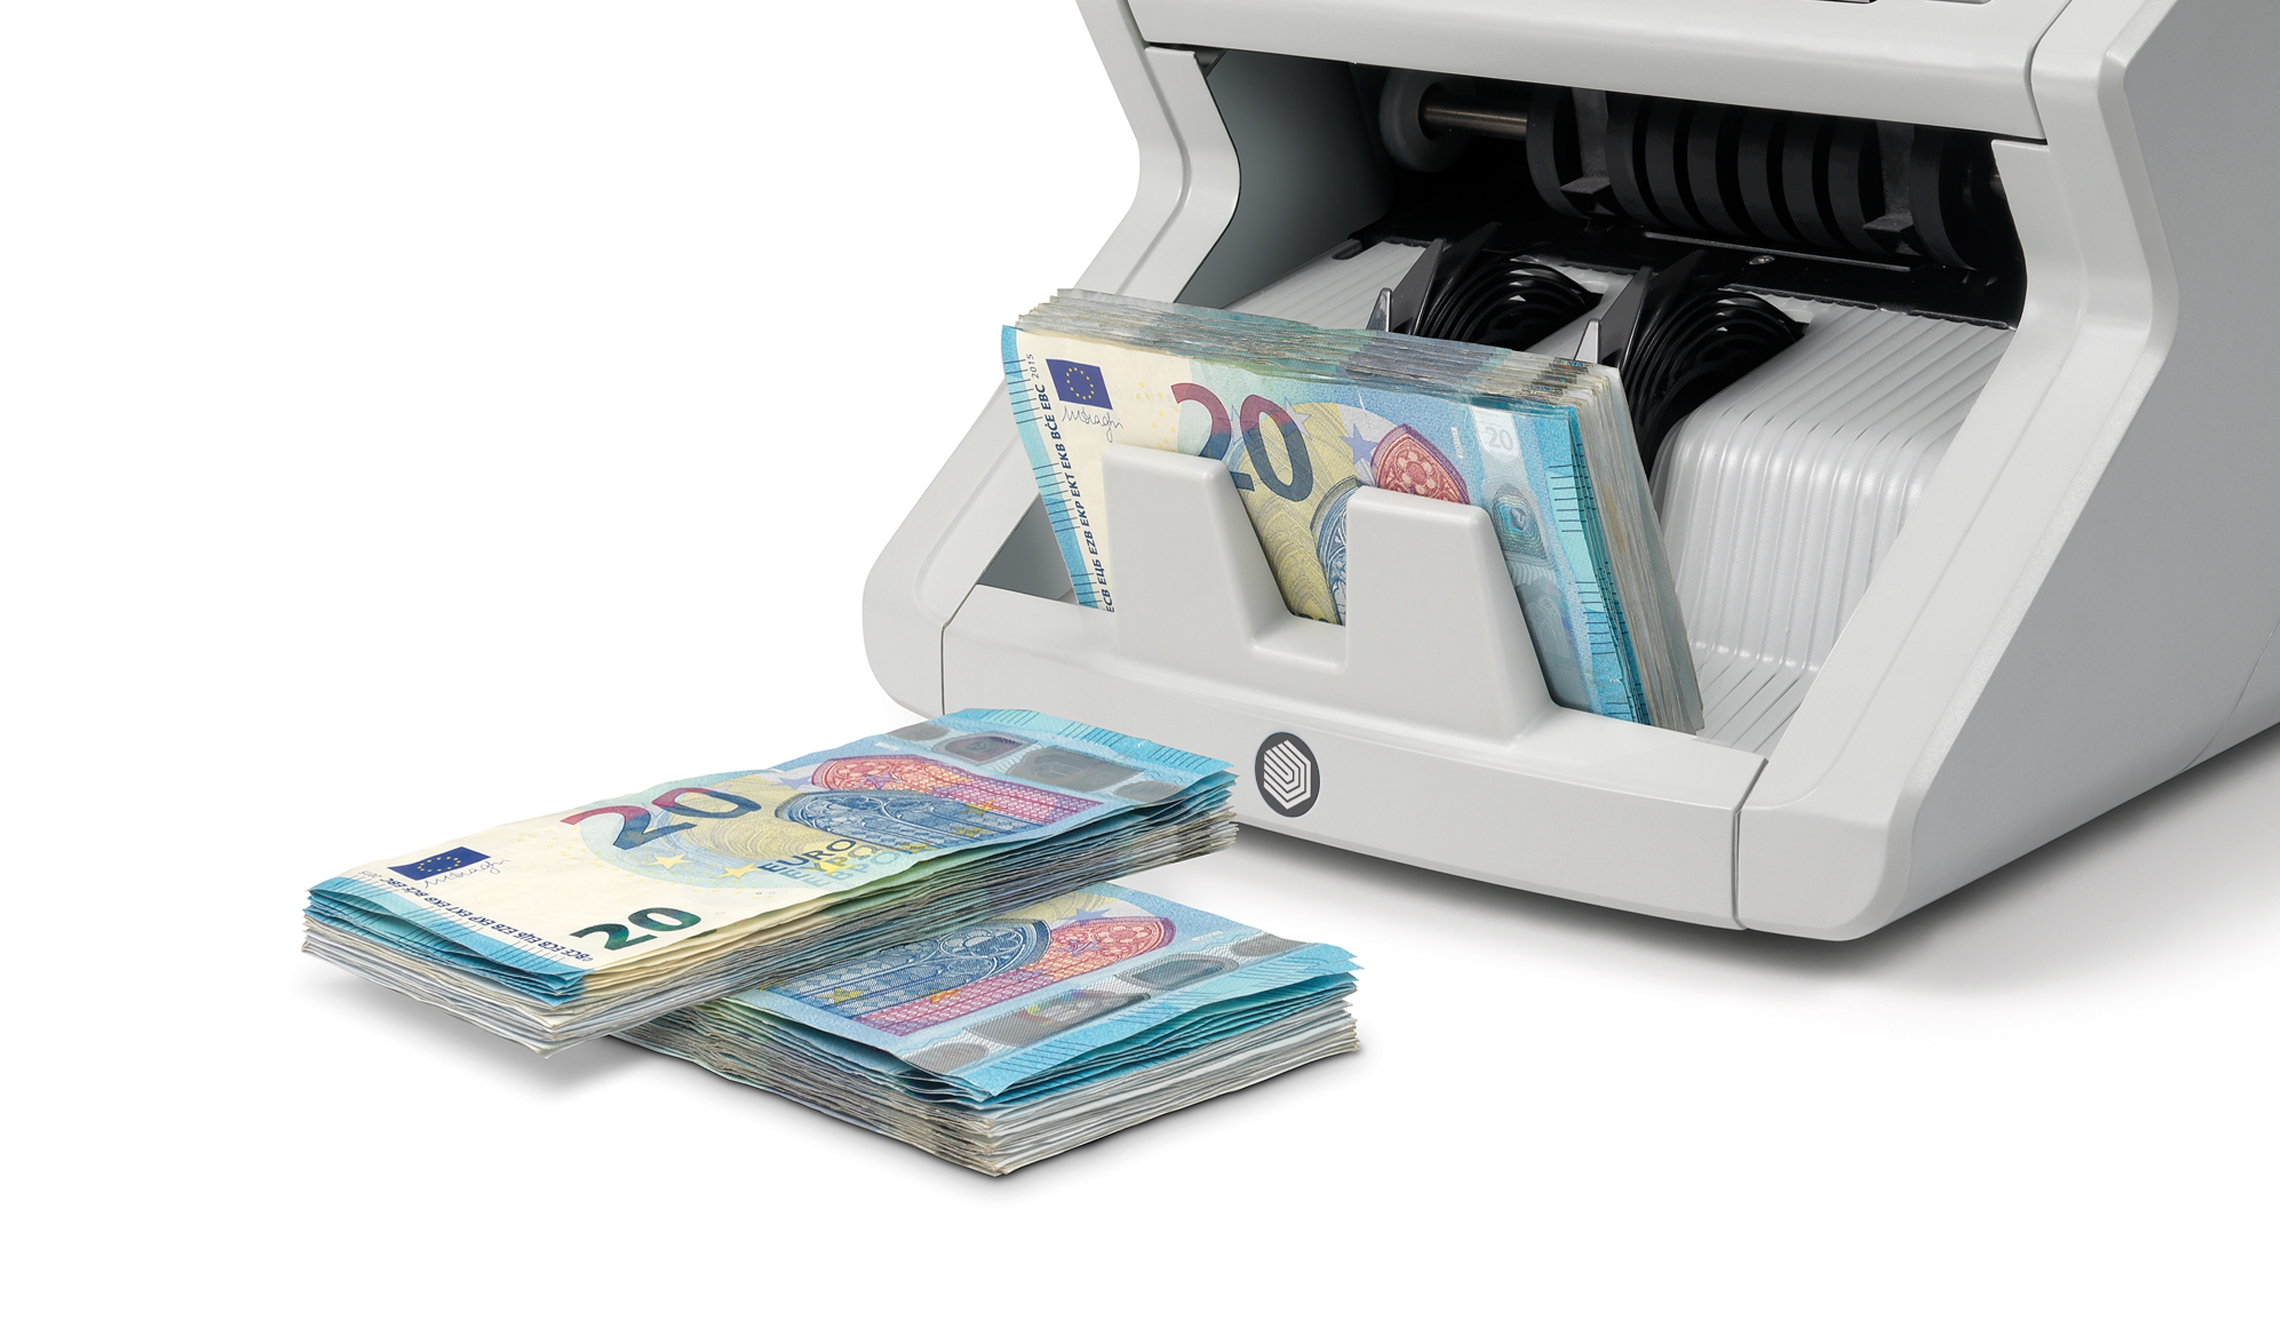 safescan-2265-banknote-counter